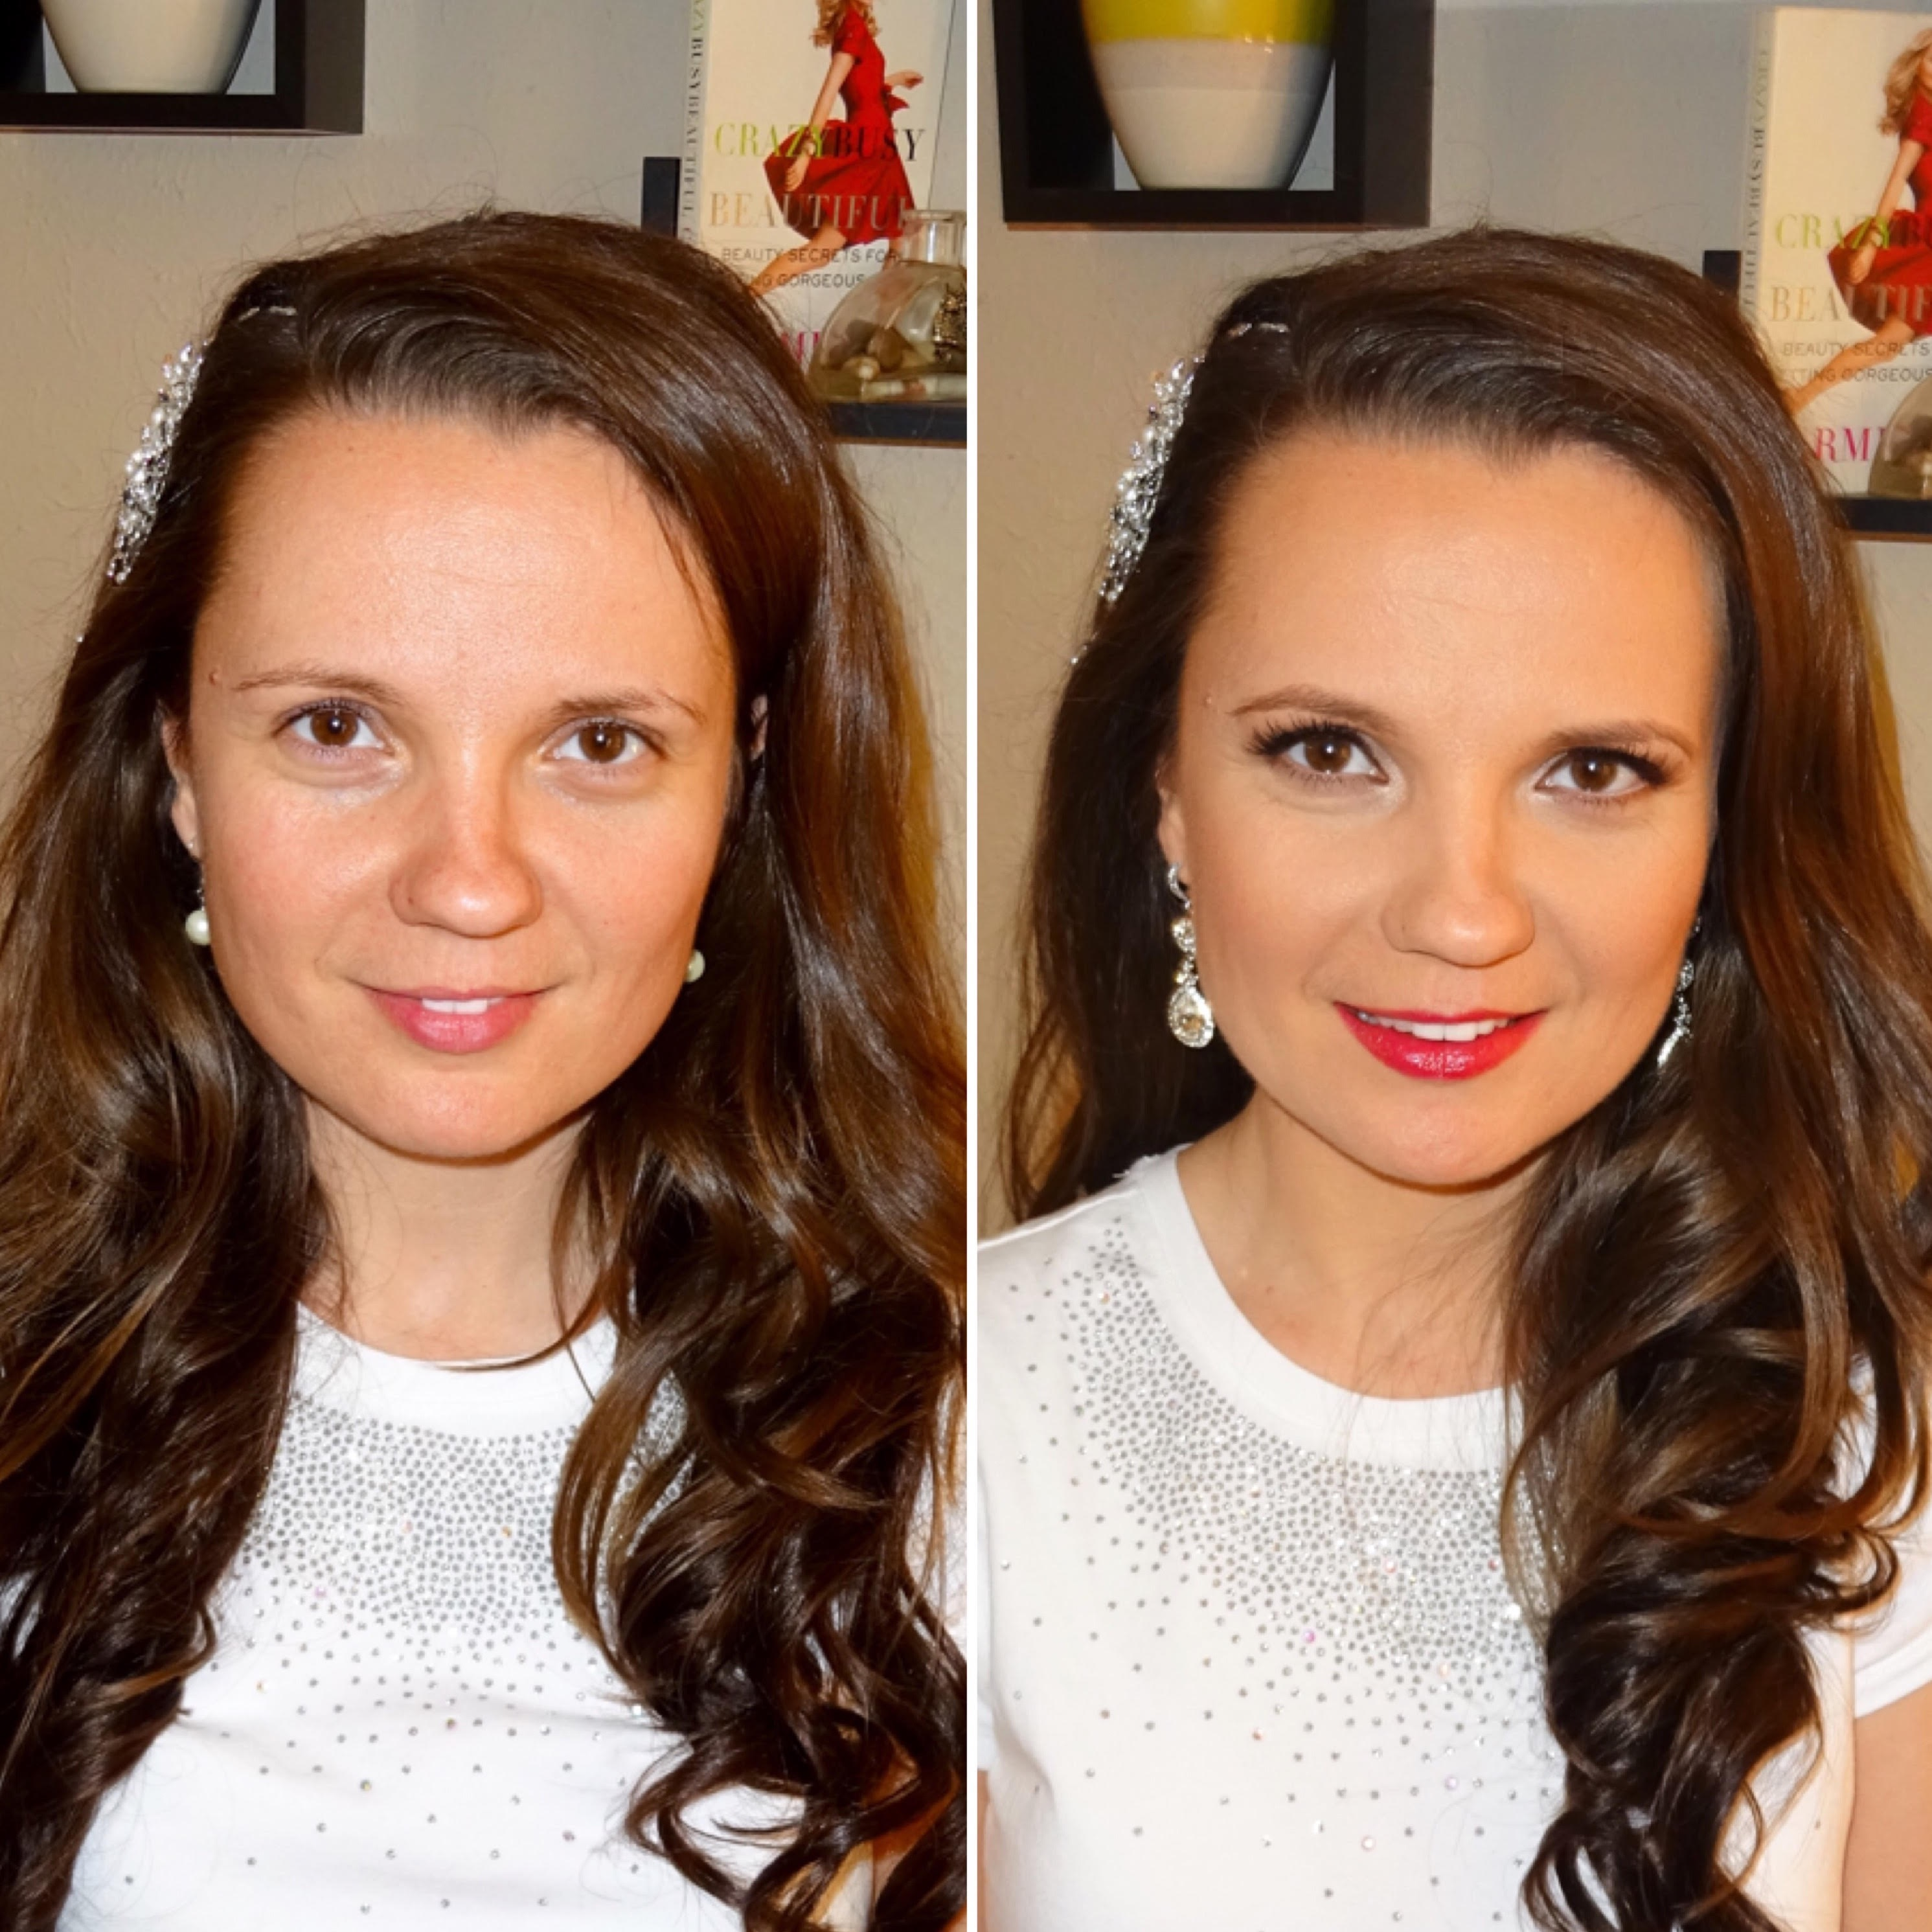 Melisa J Beauty Dallas Makeup Artist hair wedding bridal 021617 - 9